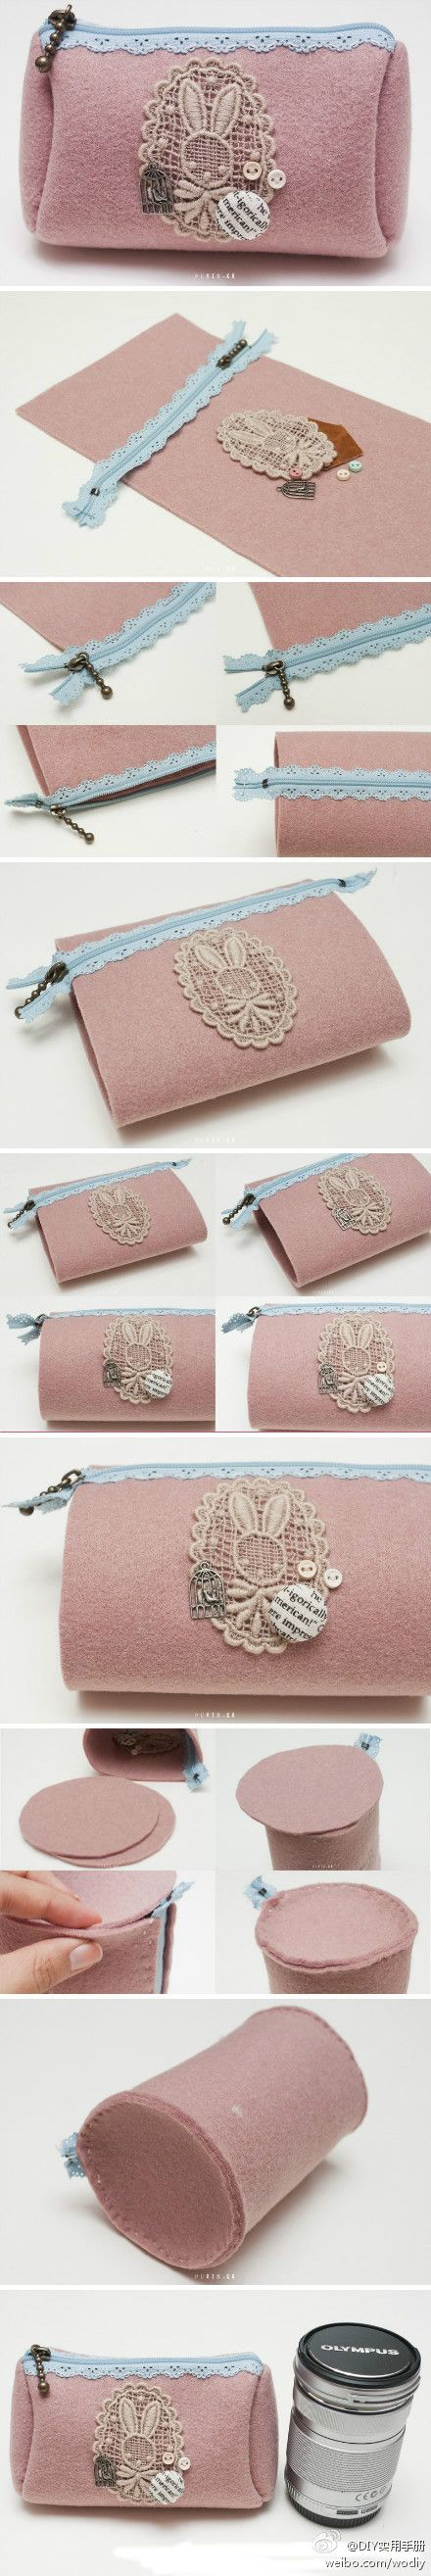 How to make a felt pencil case.